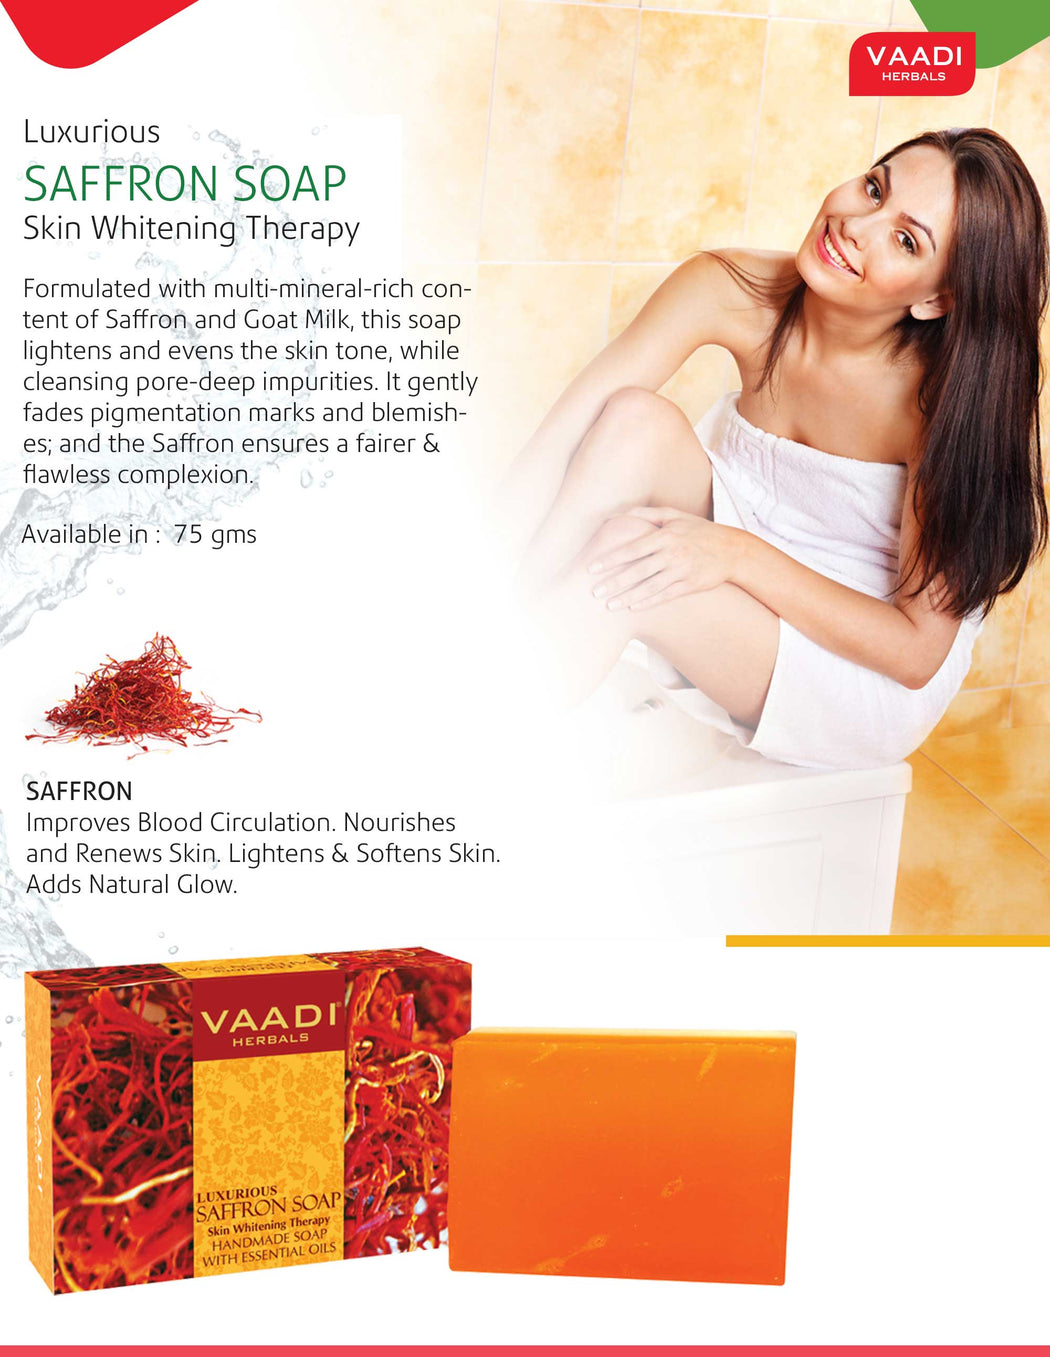 Luxurious Organic Saffron Soap - Skin Brightening Therapy - Evens Skin Tone - Lightens Marks (12 x 75 gms / 2.7 oz)